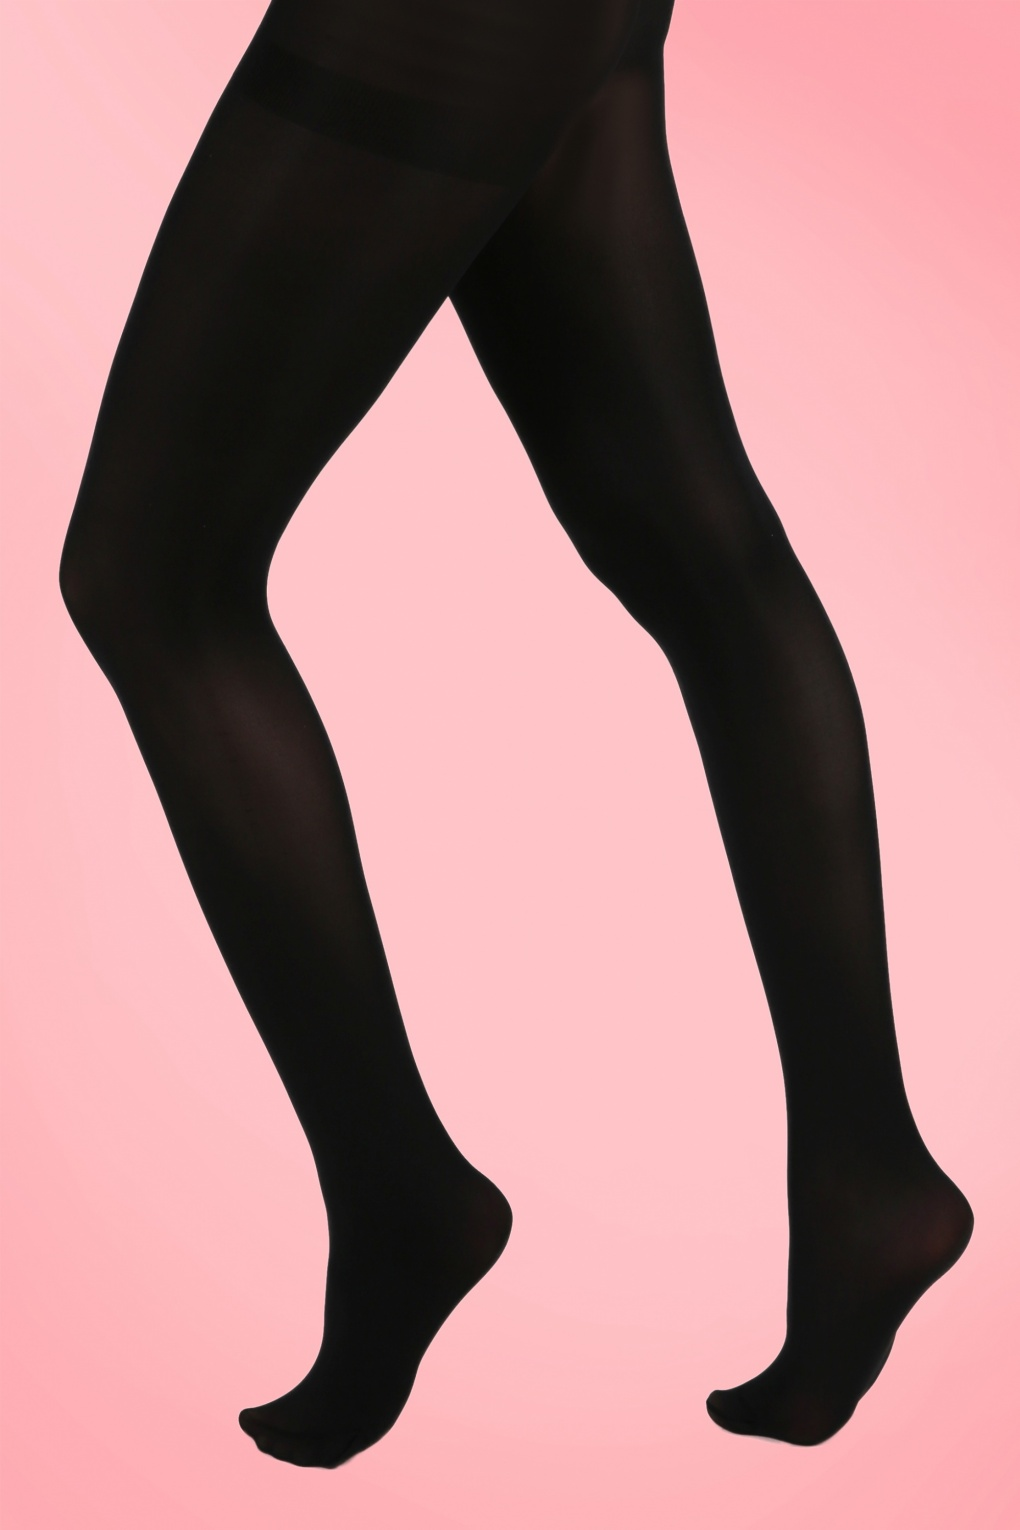 1960s Tights, Stockings, Panty Hose, Knee High Socks 60s Opaque Tights in Black £7.77 AT vintagedancer.com